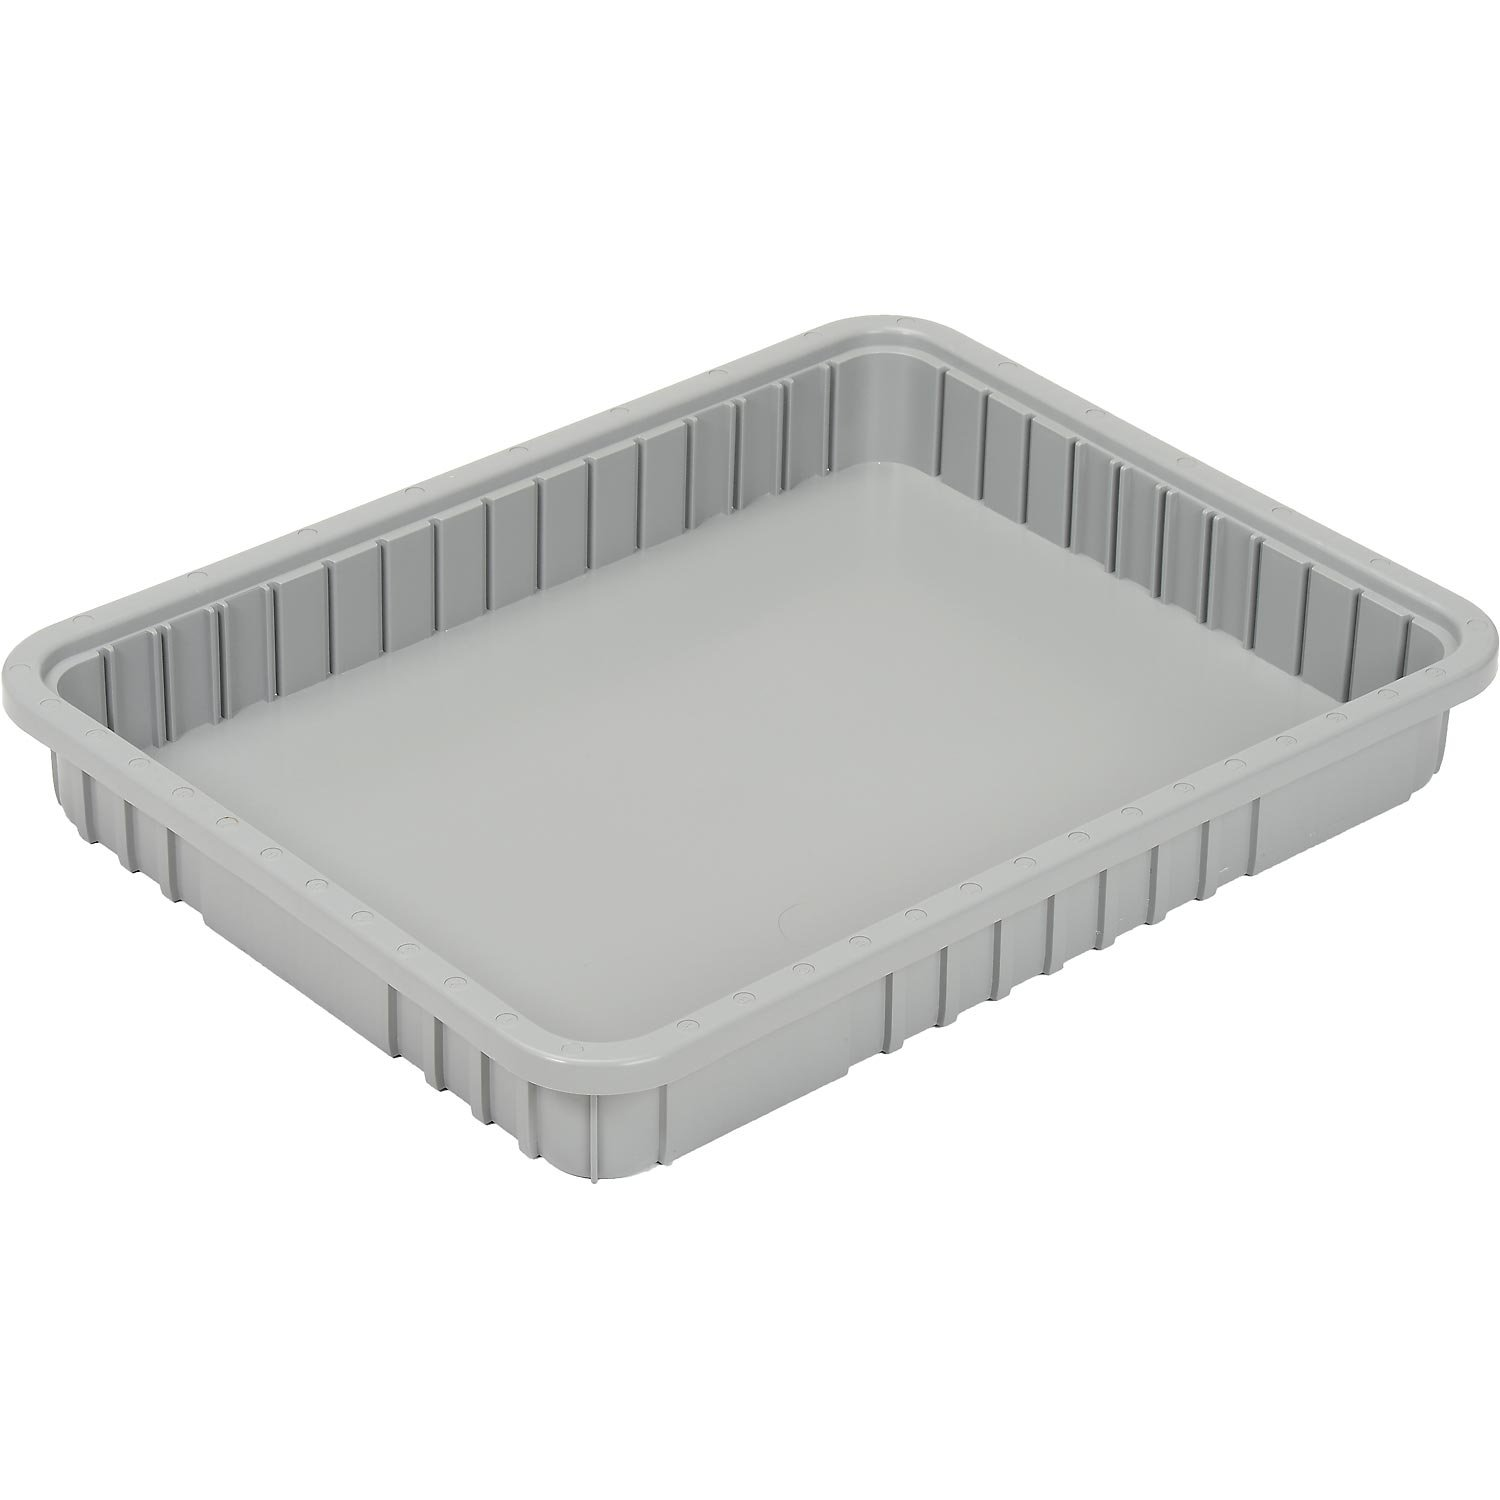 Plastic Dividable Grid Container, 22-1/2''L x 17-1/2''W x 3''H, Gray - Lot of 6 by Quantum